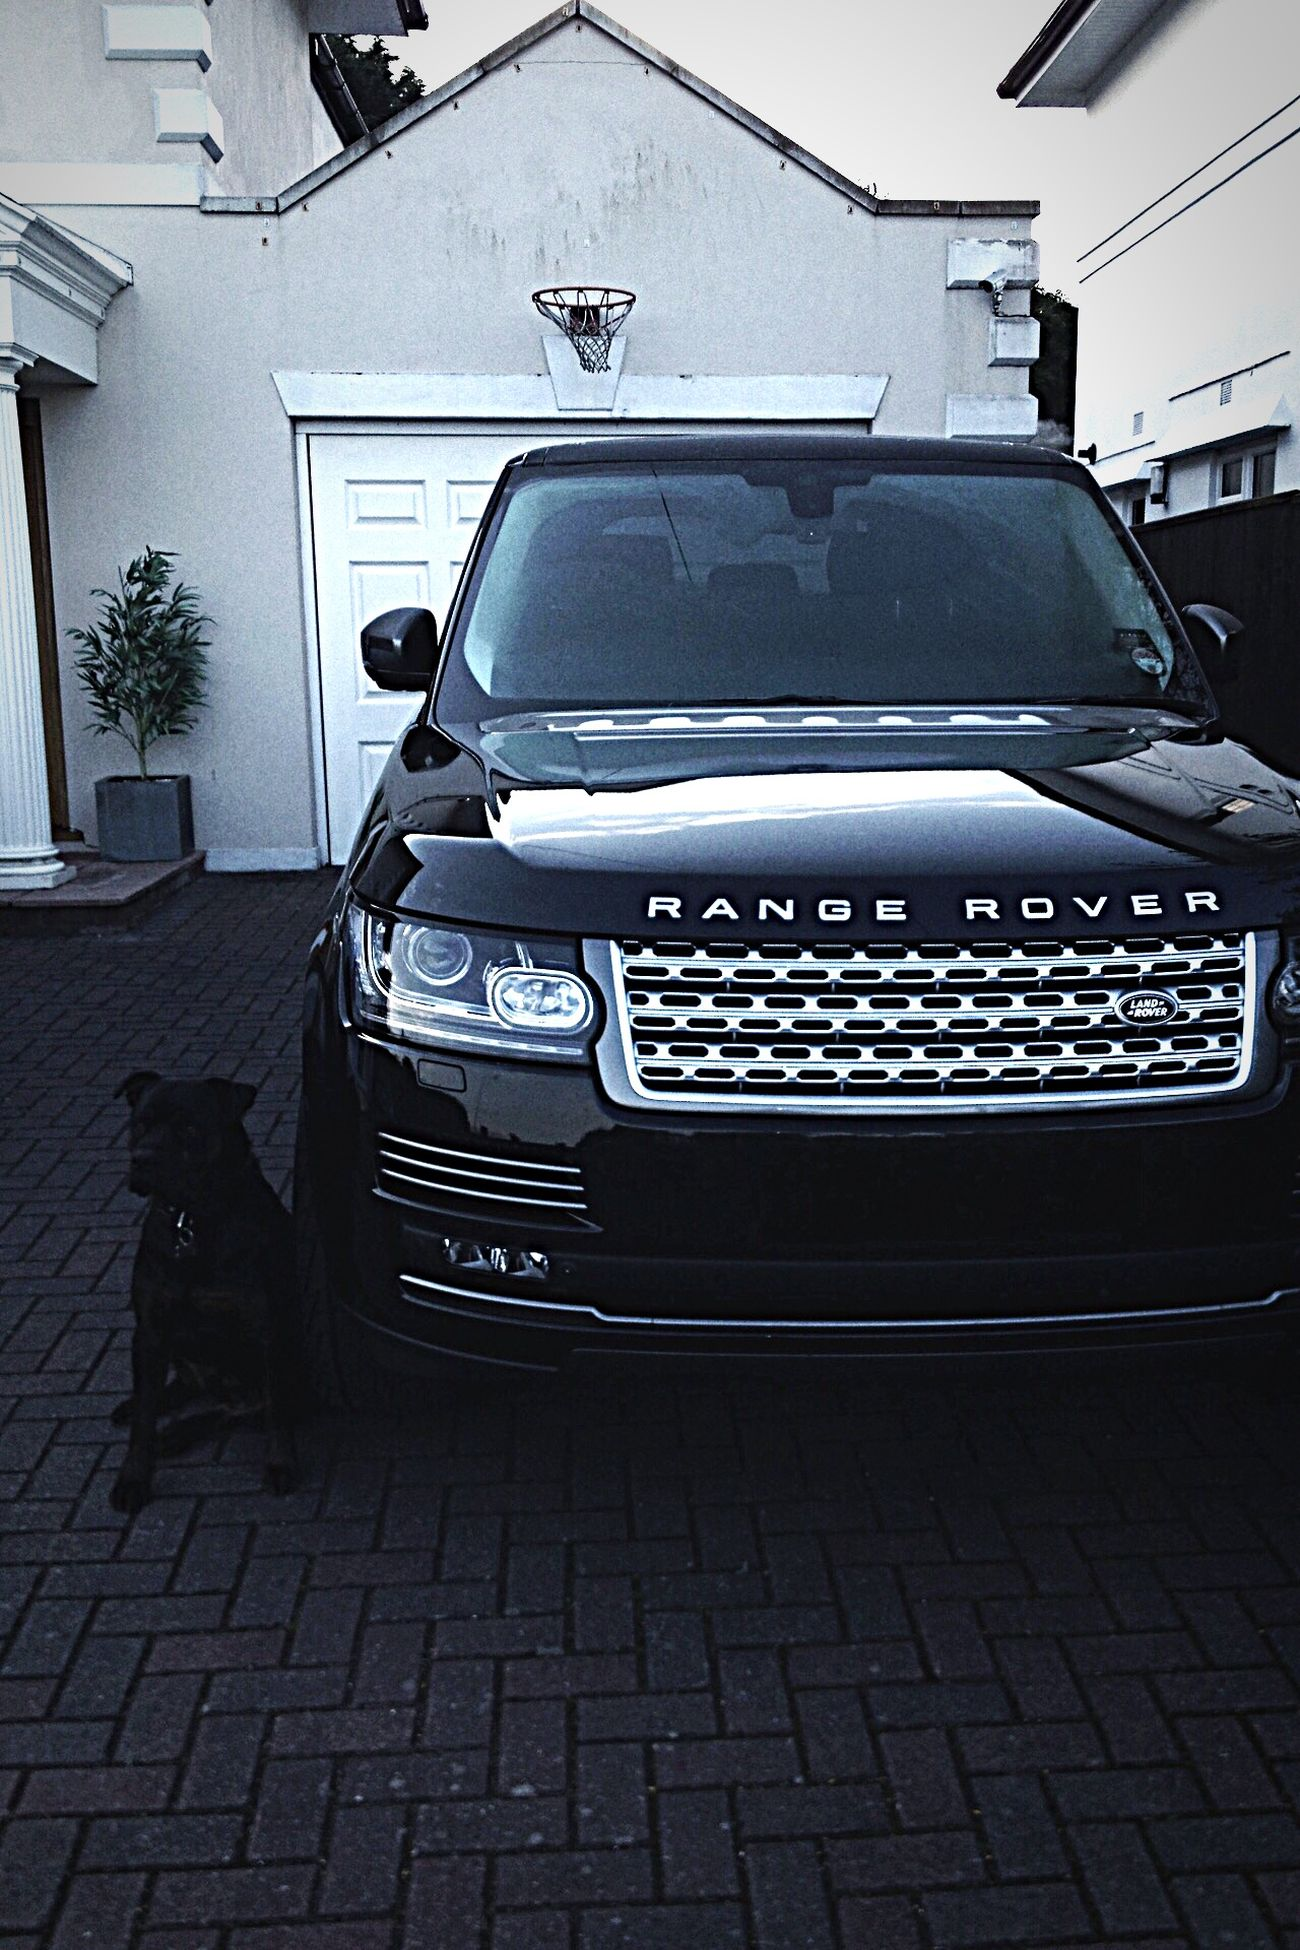 Love This car? Car Rangerover Goals Pretty Percef Soon...